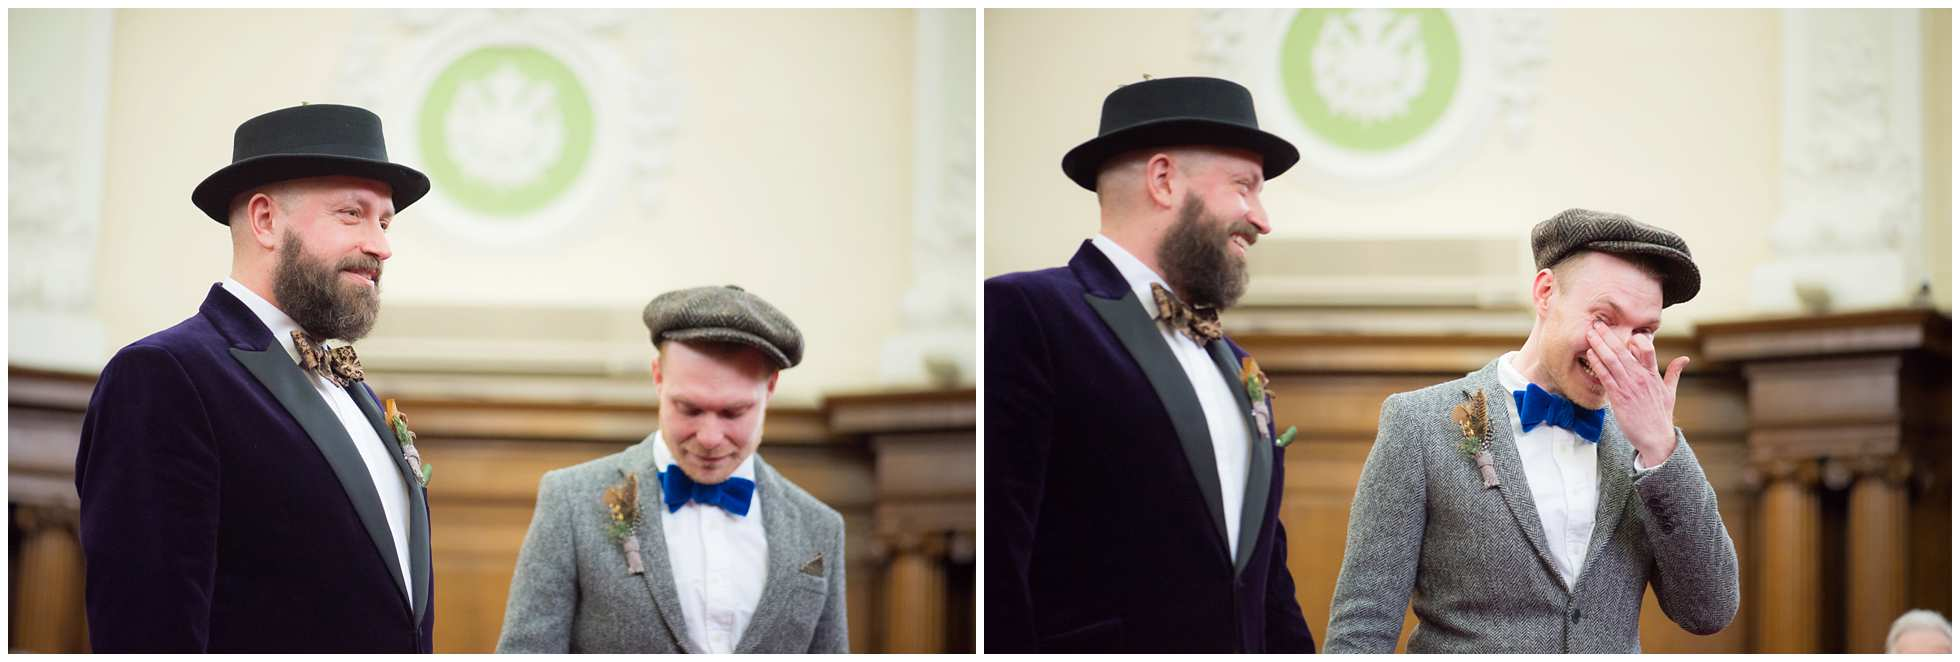 yet more tears gay wedding photography islington town hall